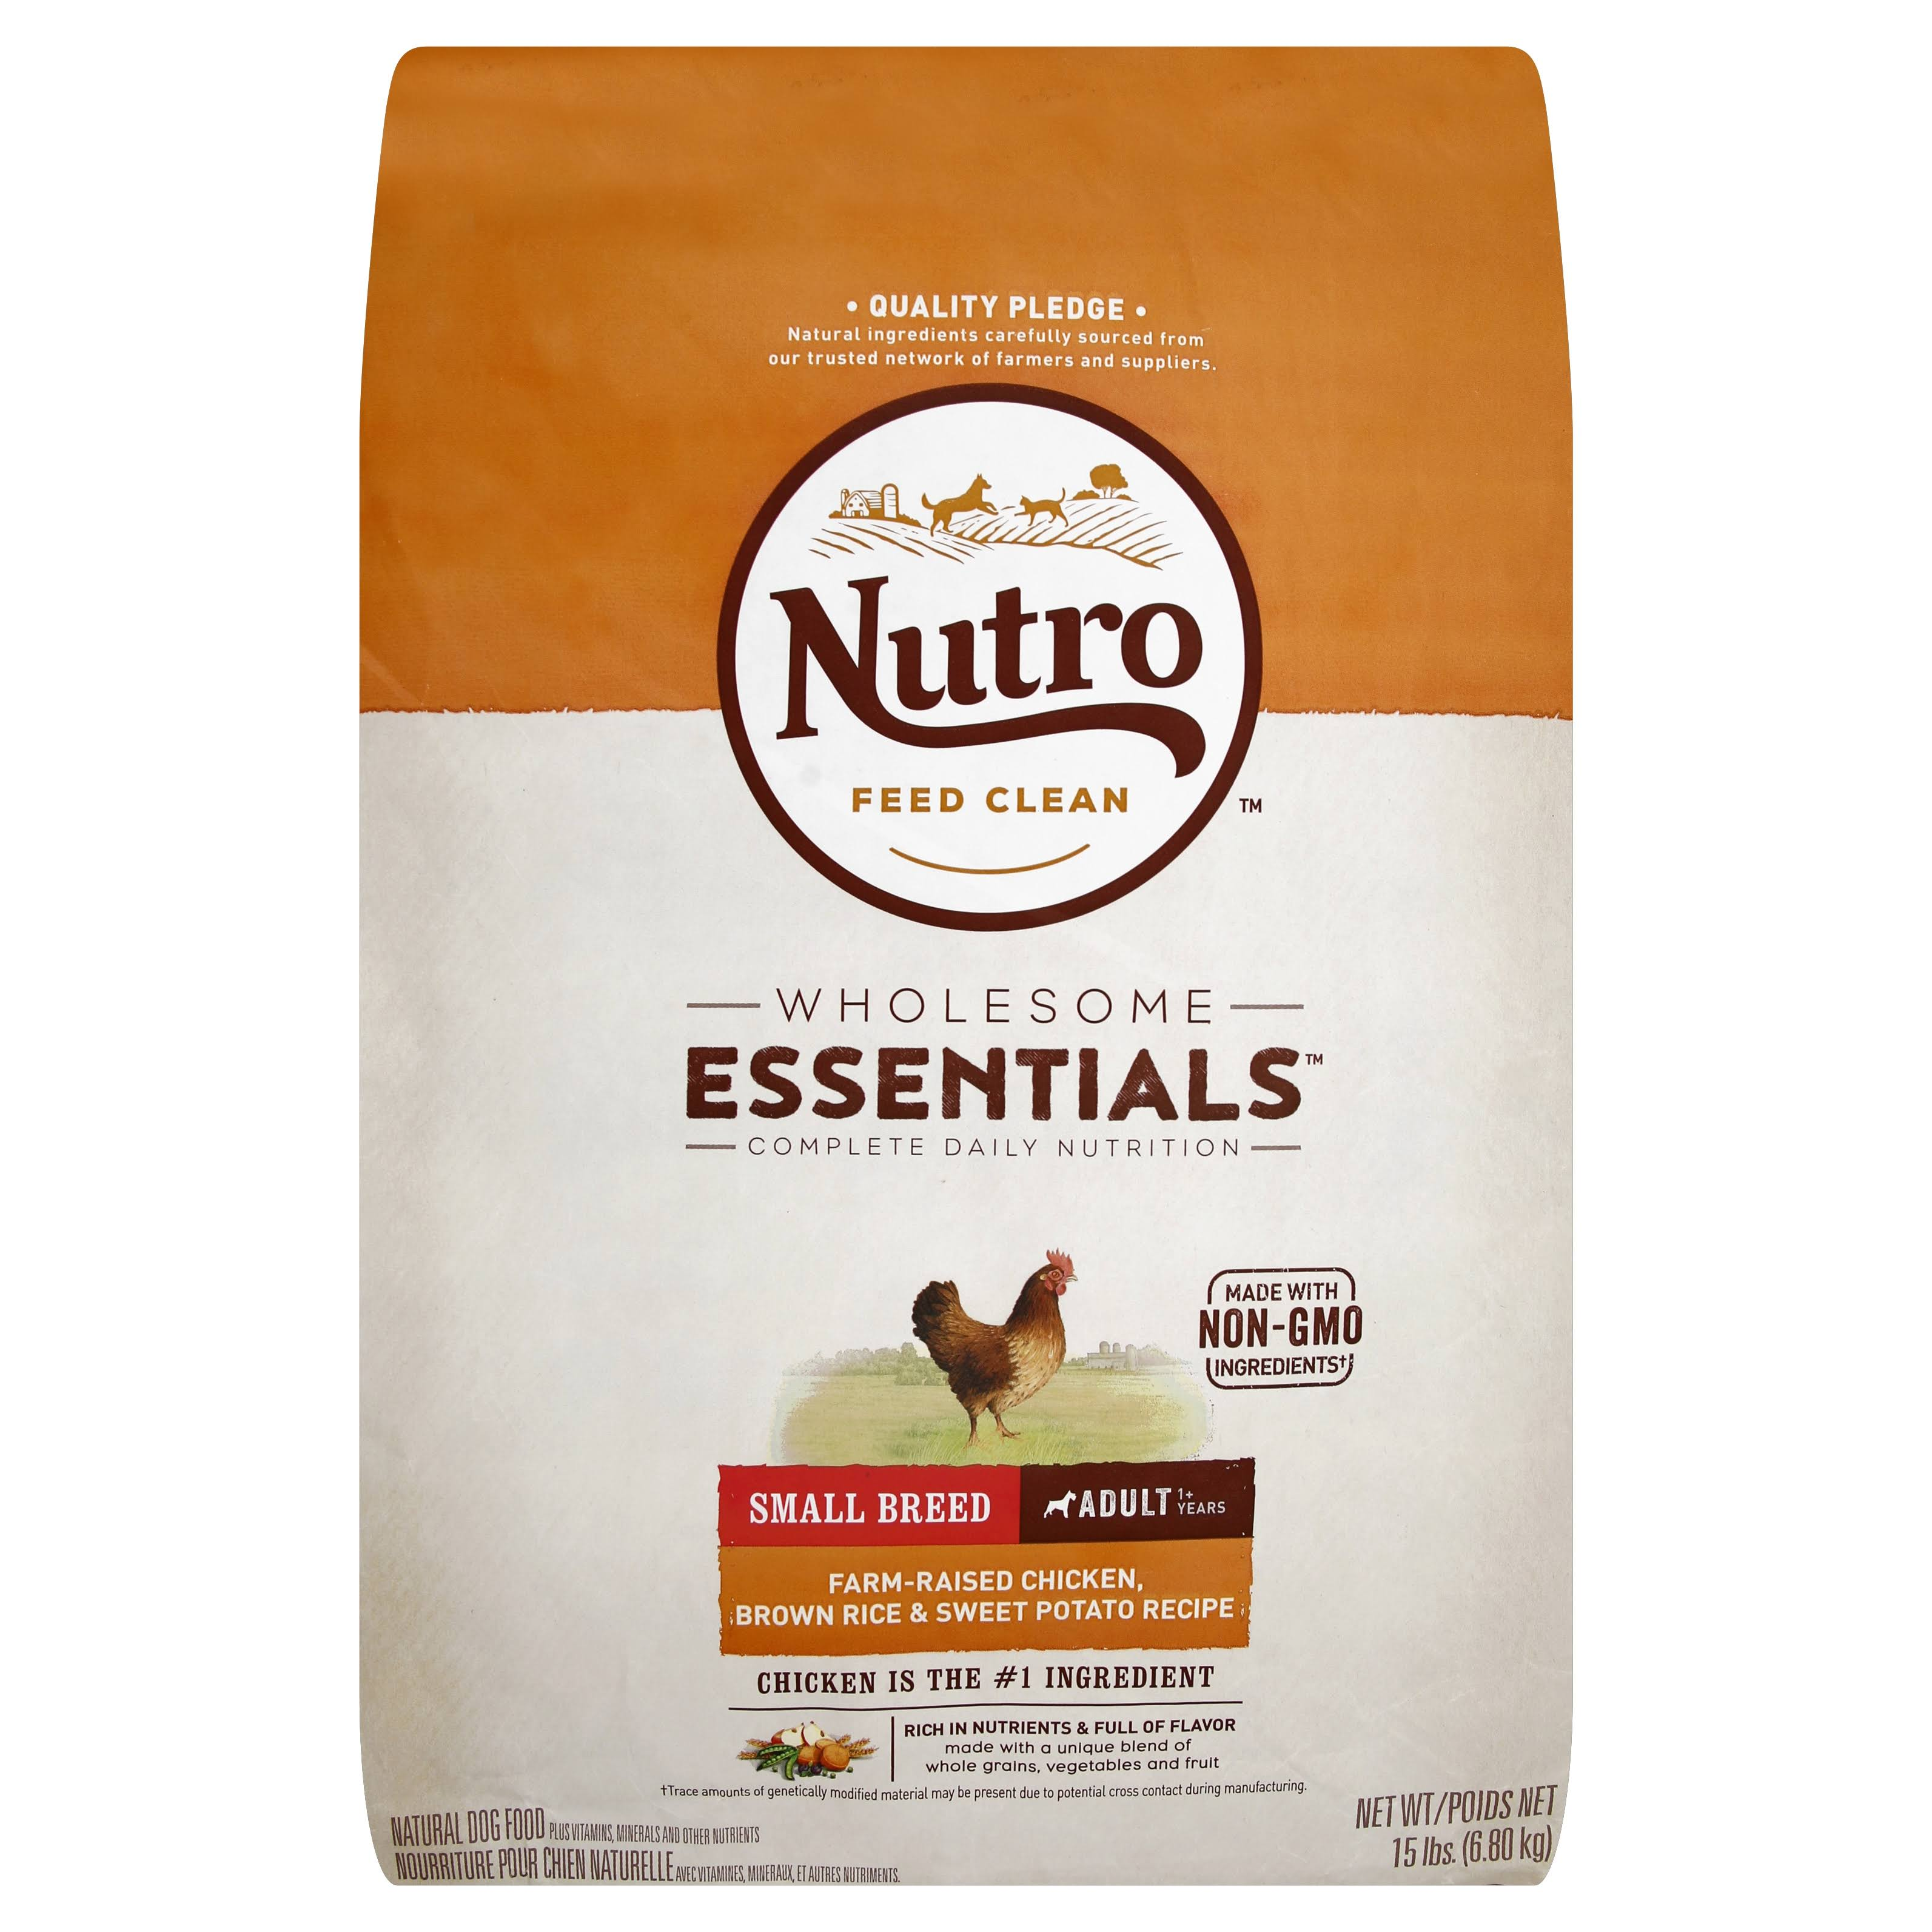 Nutro Small Breed Adult Dog Food - Chicken, Whole Brown Rice & Oatmeal Recipe, 15 lbs